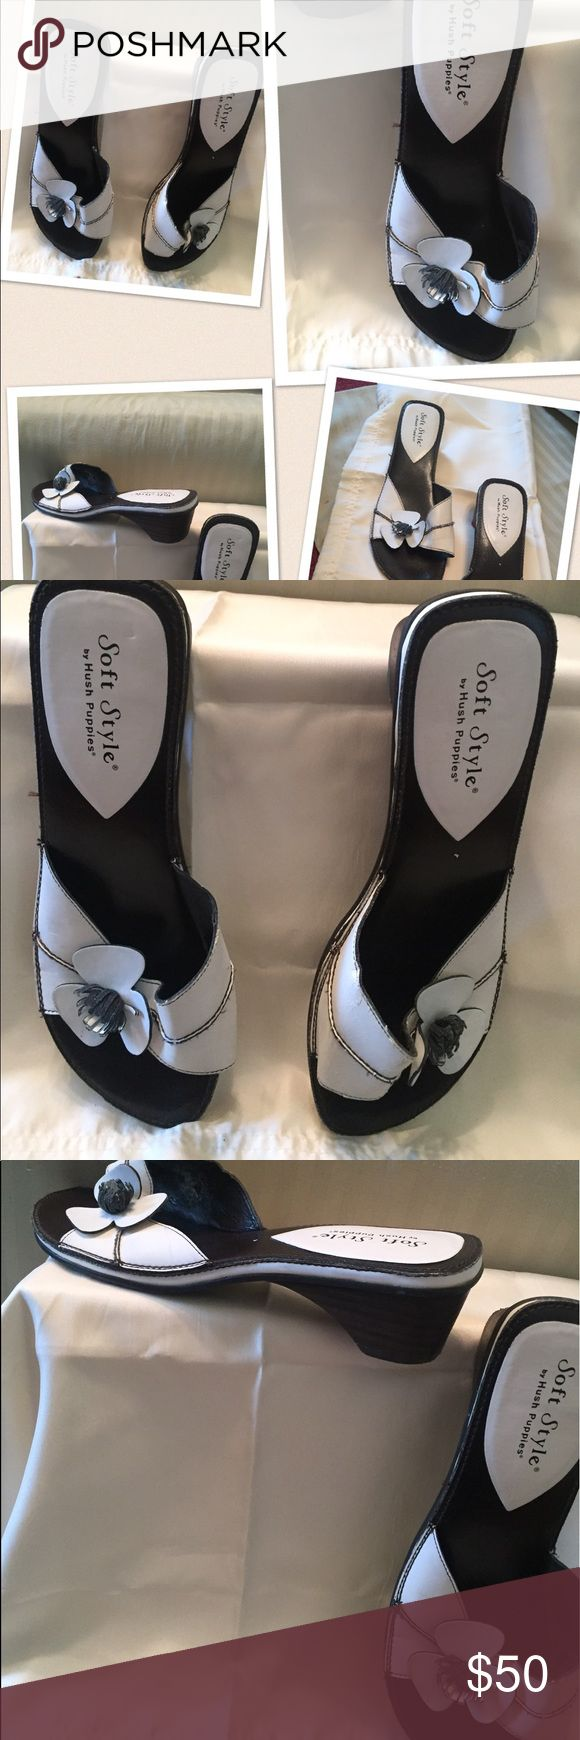 White Hush Puppy flip flops Very comfortable.... clean white....Low heel! Hush Puppies Shoes Sandals